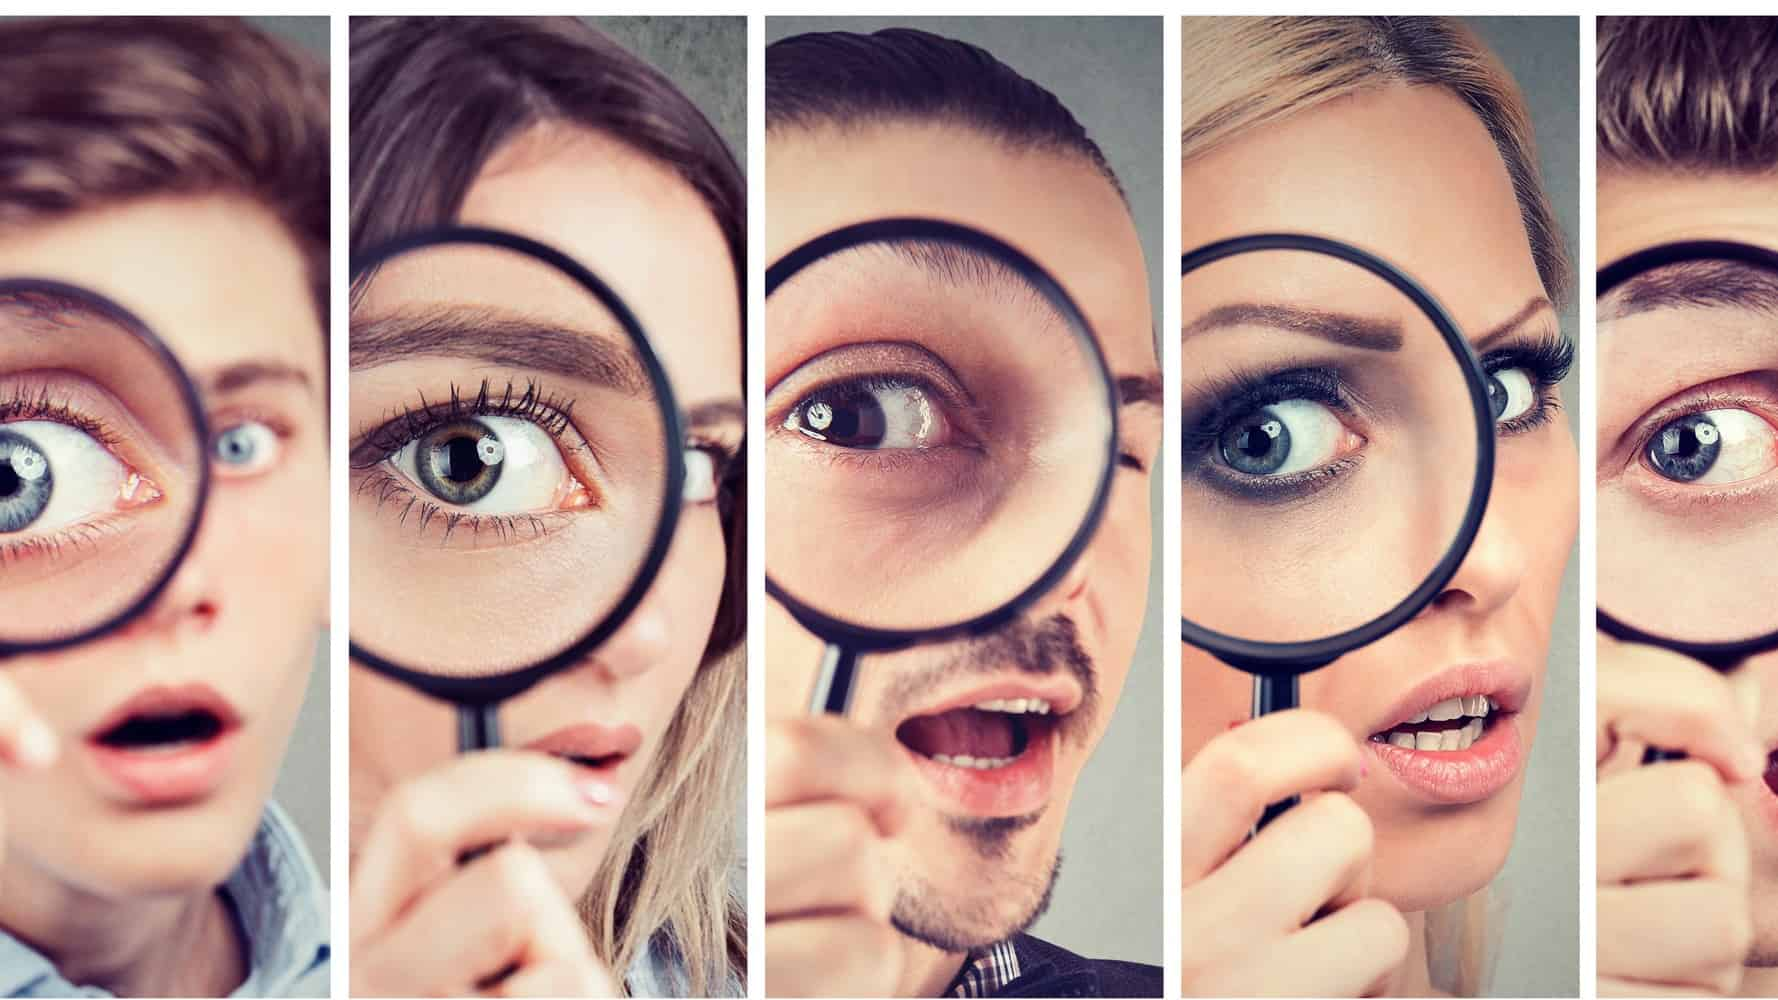 asx share price on watch represented by group of prople all looking through magnifying glasses